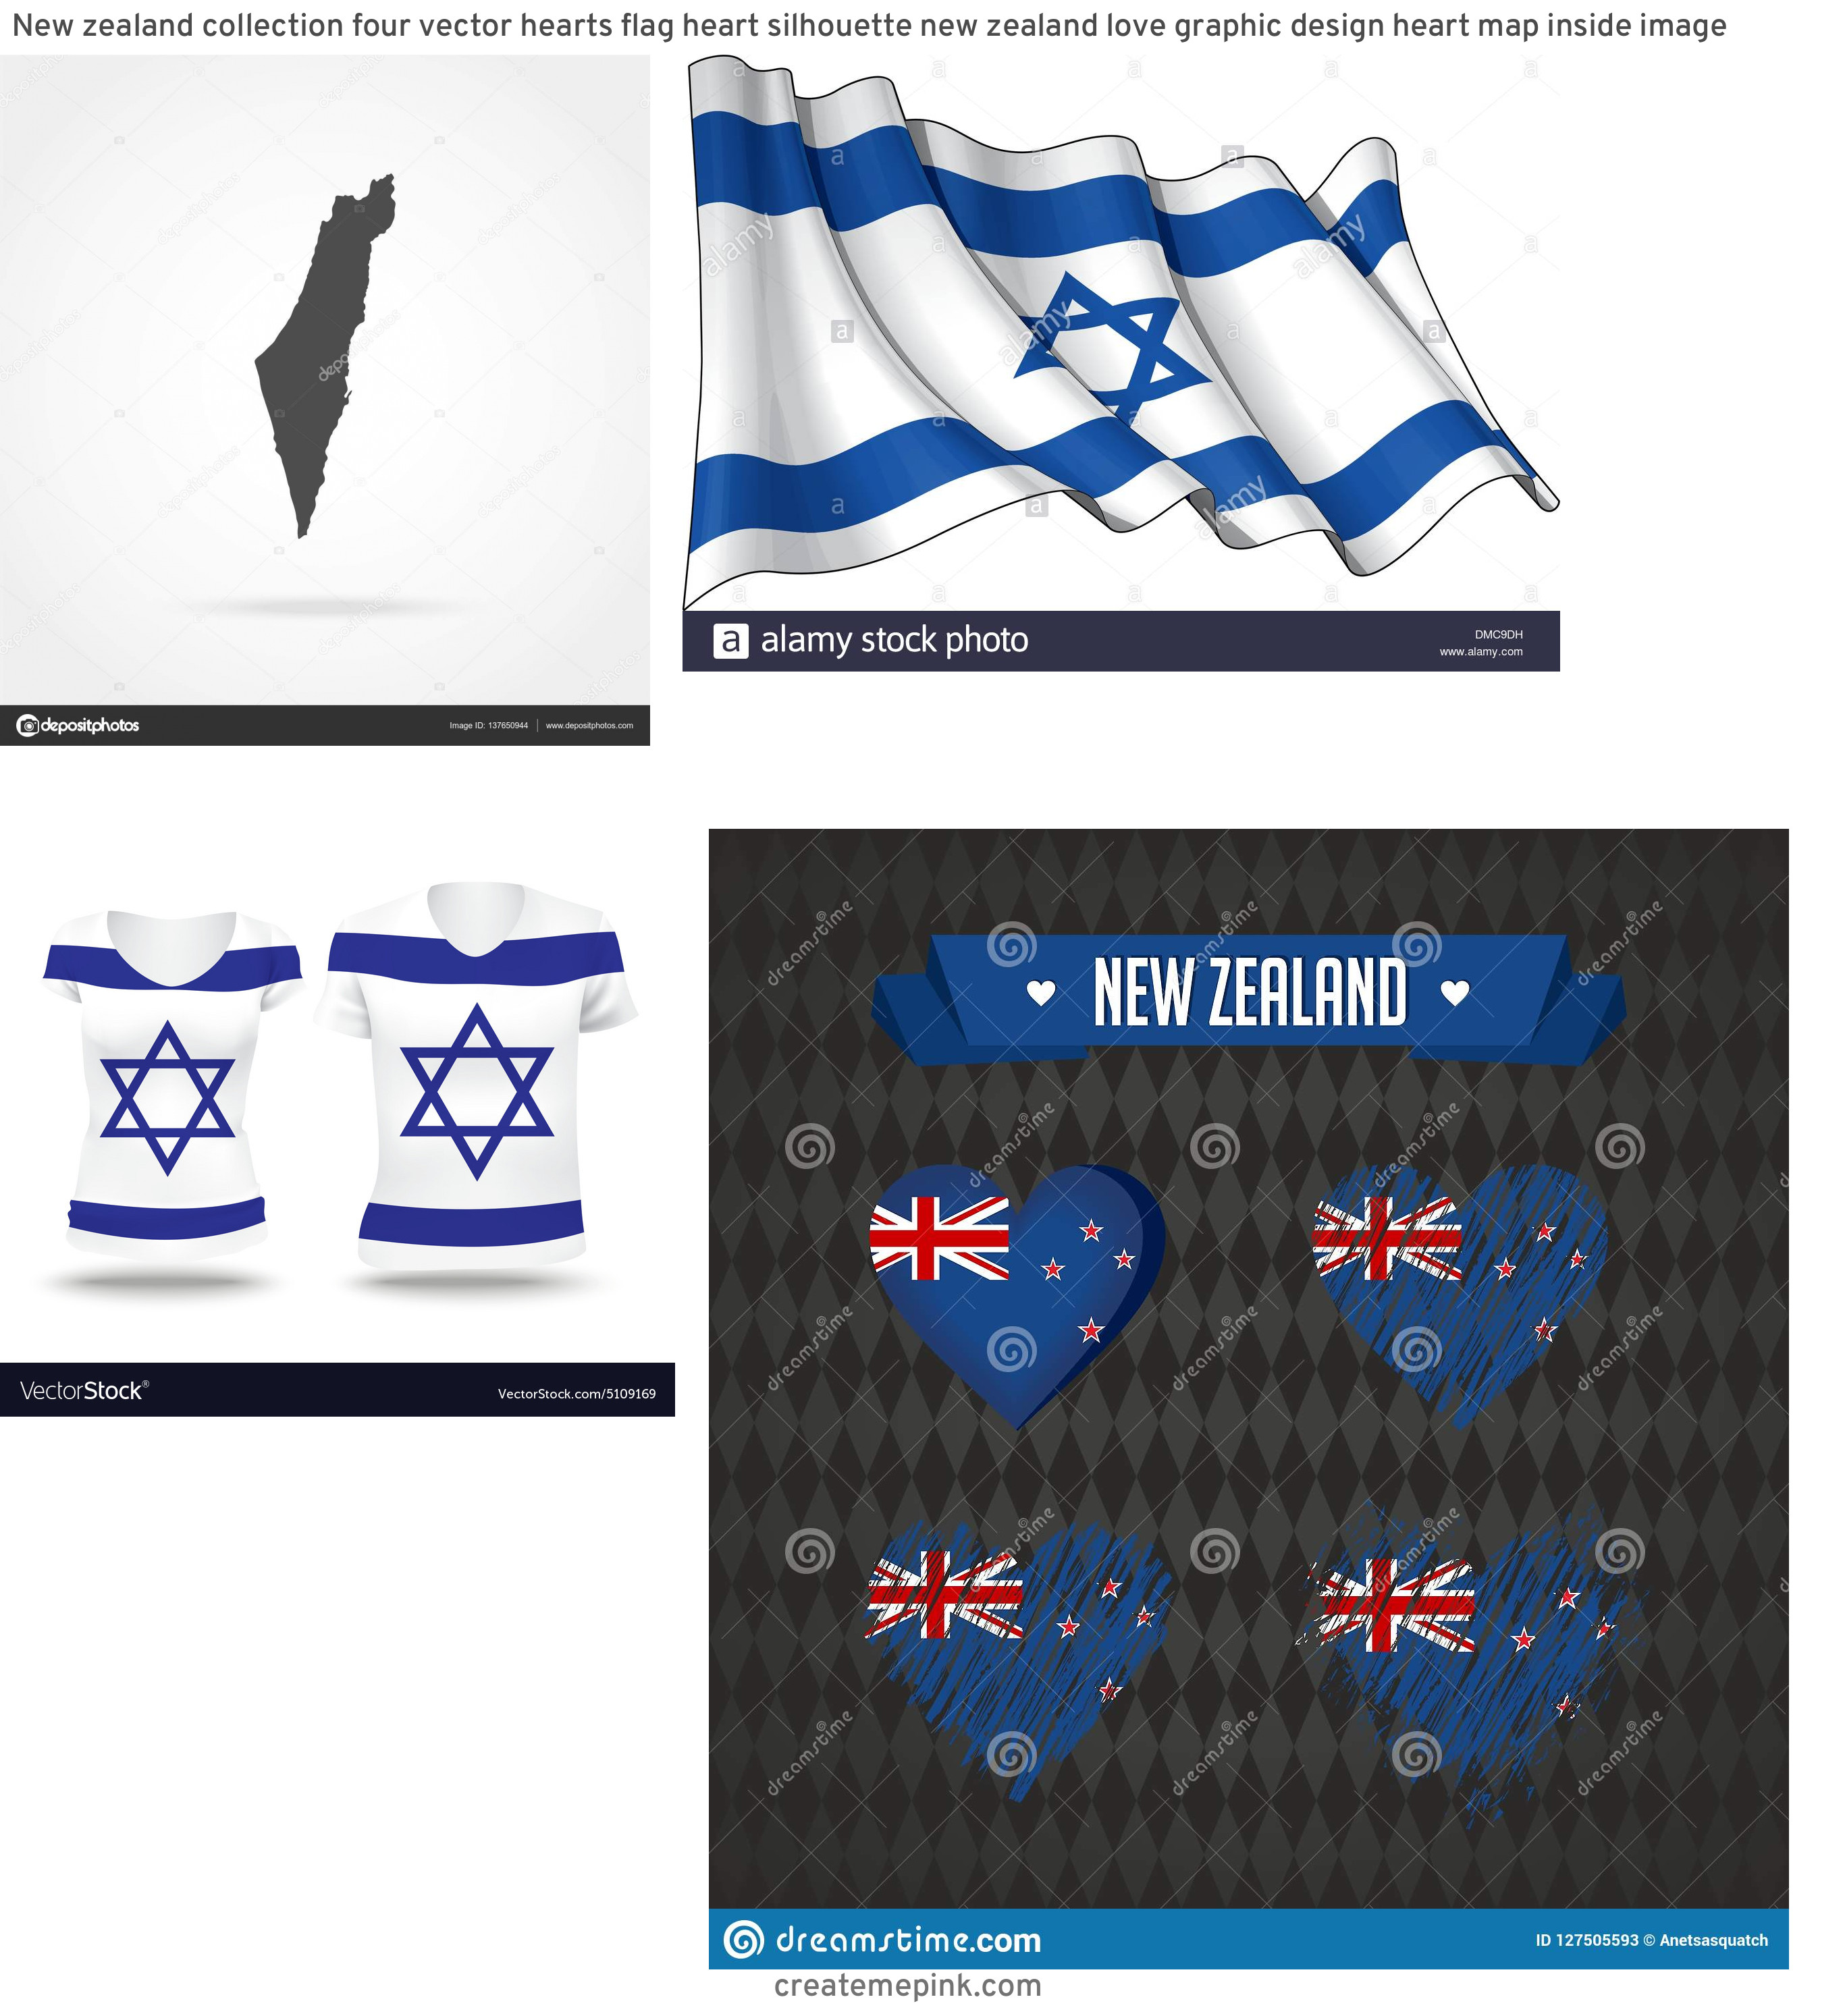 Israel And New Jersey Flag Vector: New Zealand Collection Four Vector Hearts Flag Heart Silhouette New Zealand Love Graphic Design Heart Map Inside Image